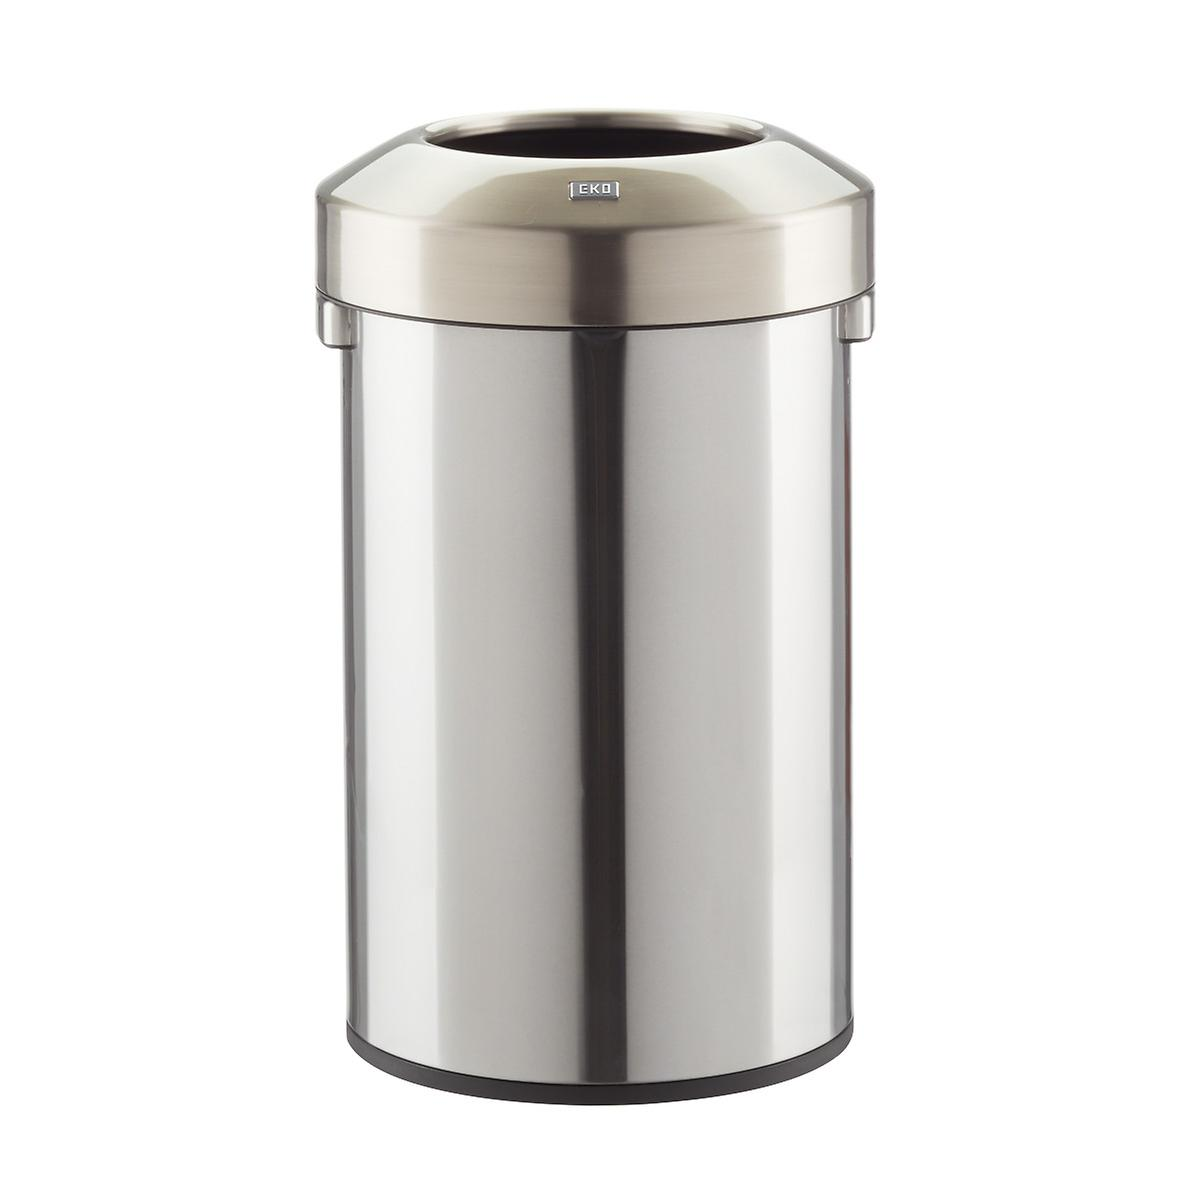 Stainless Steel 15.8 gal./60L Open-Top Commercial Can